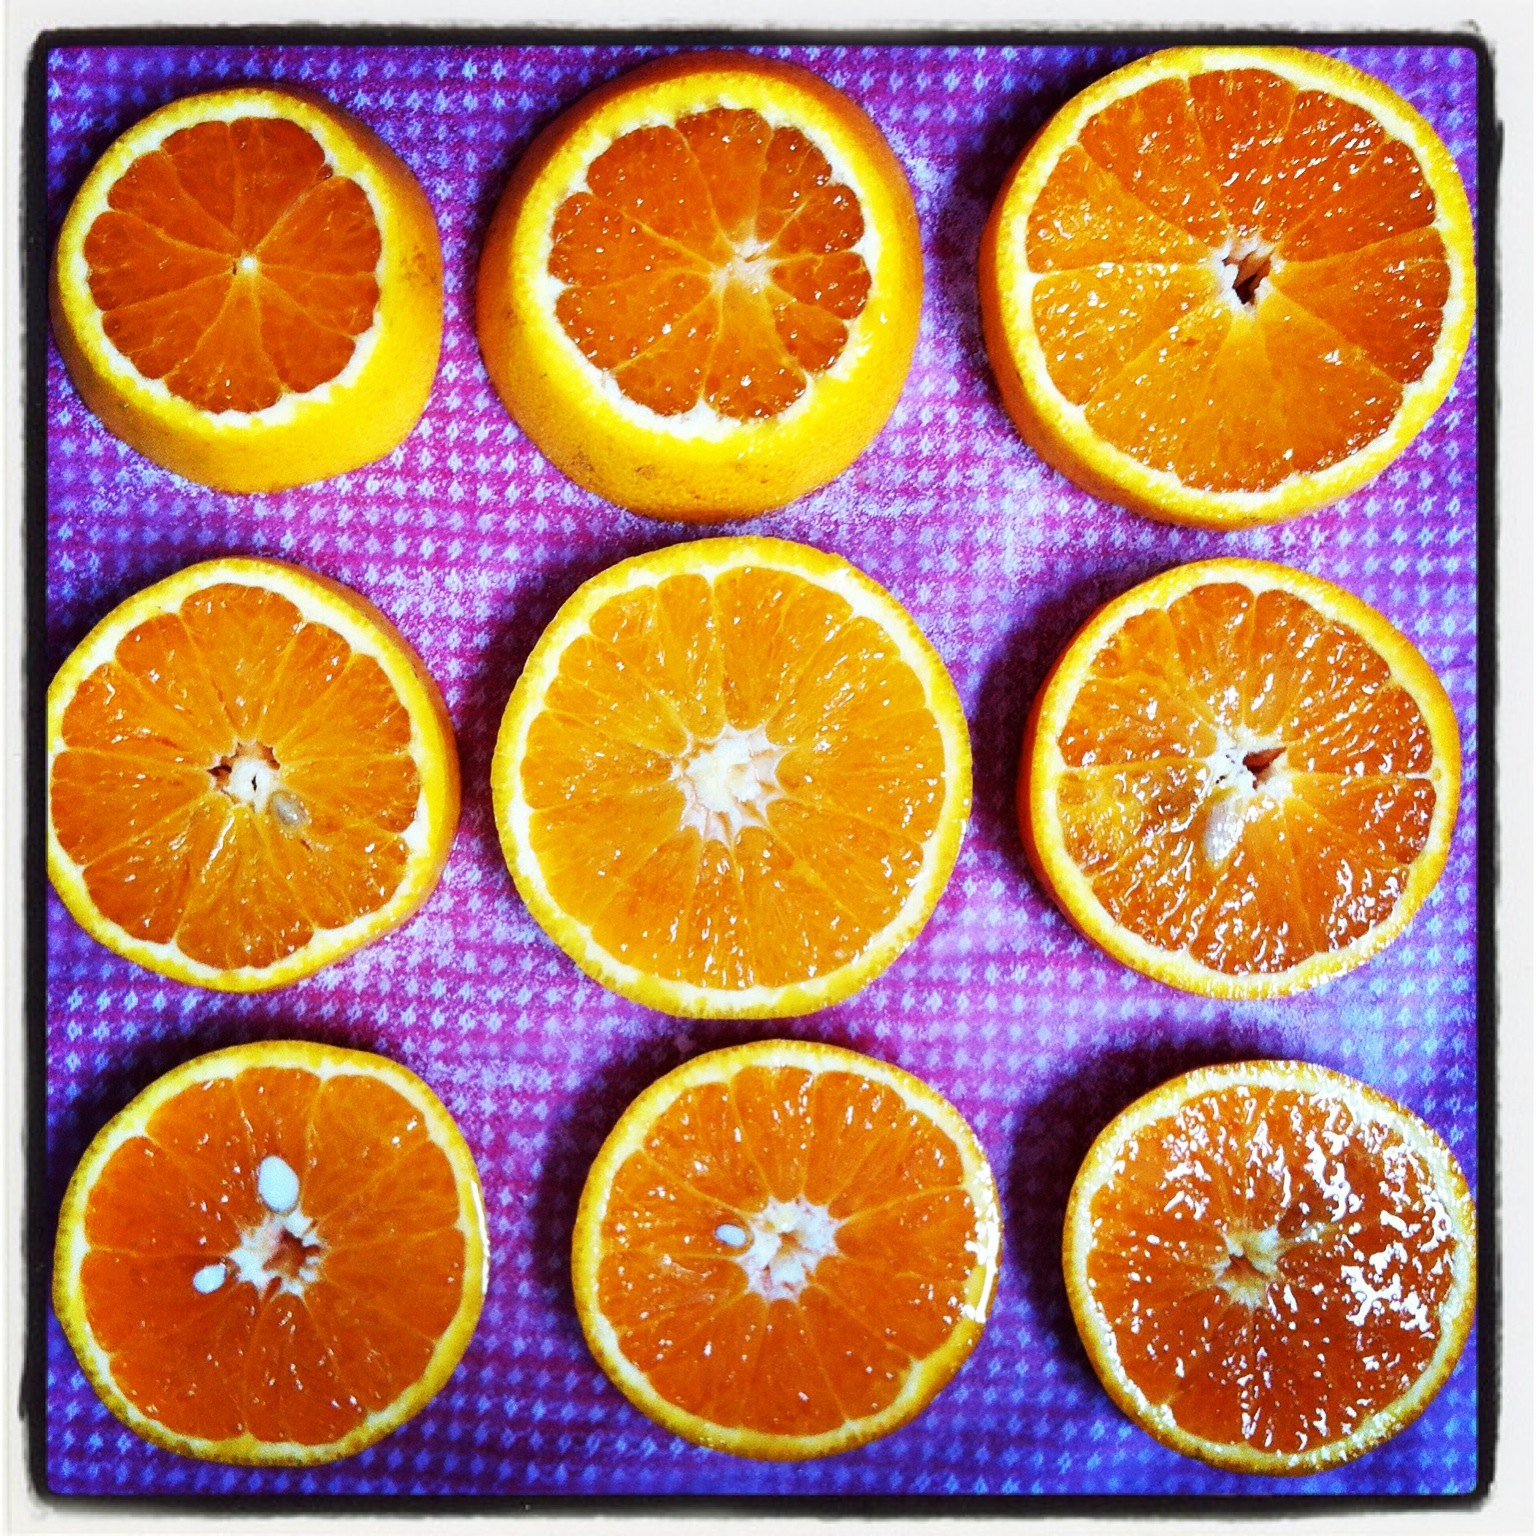 How To Dry Oranges For Christmas Flower Decorating